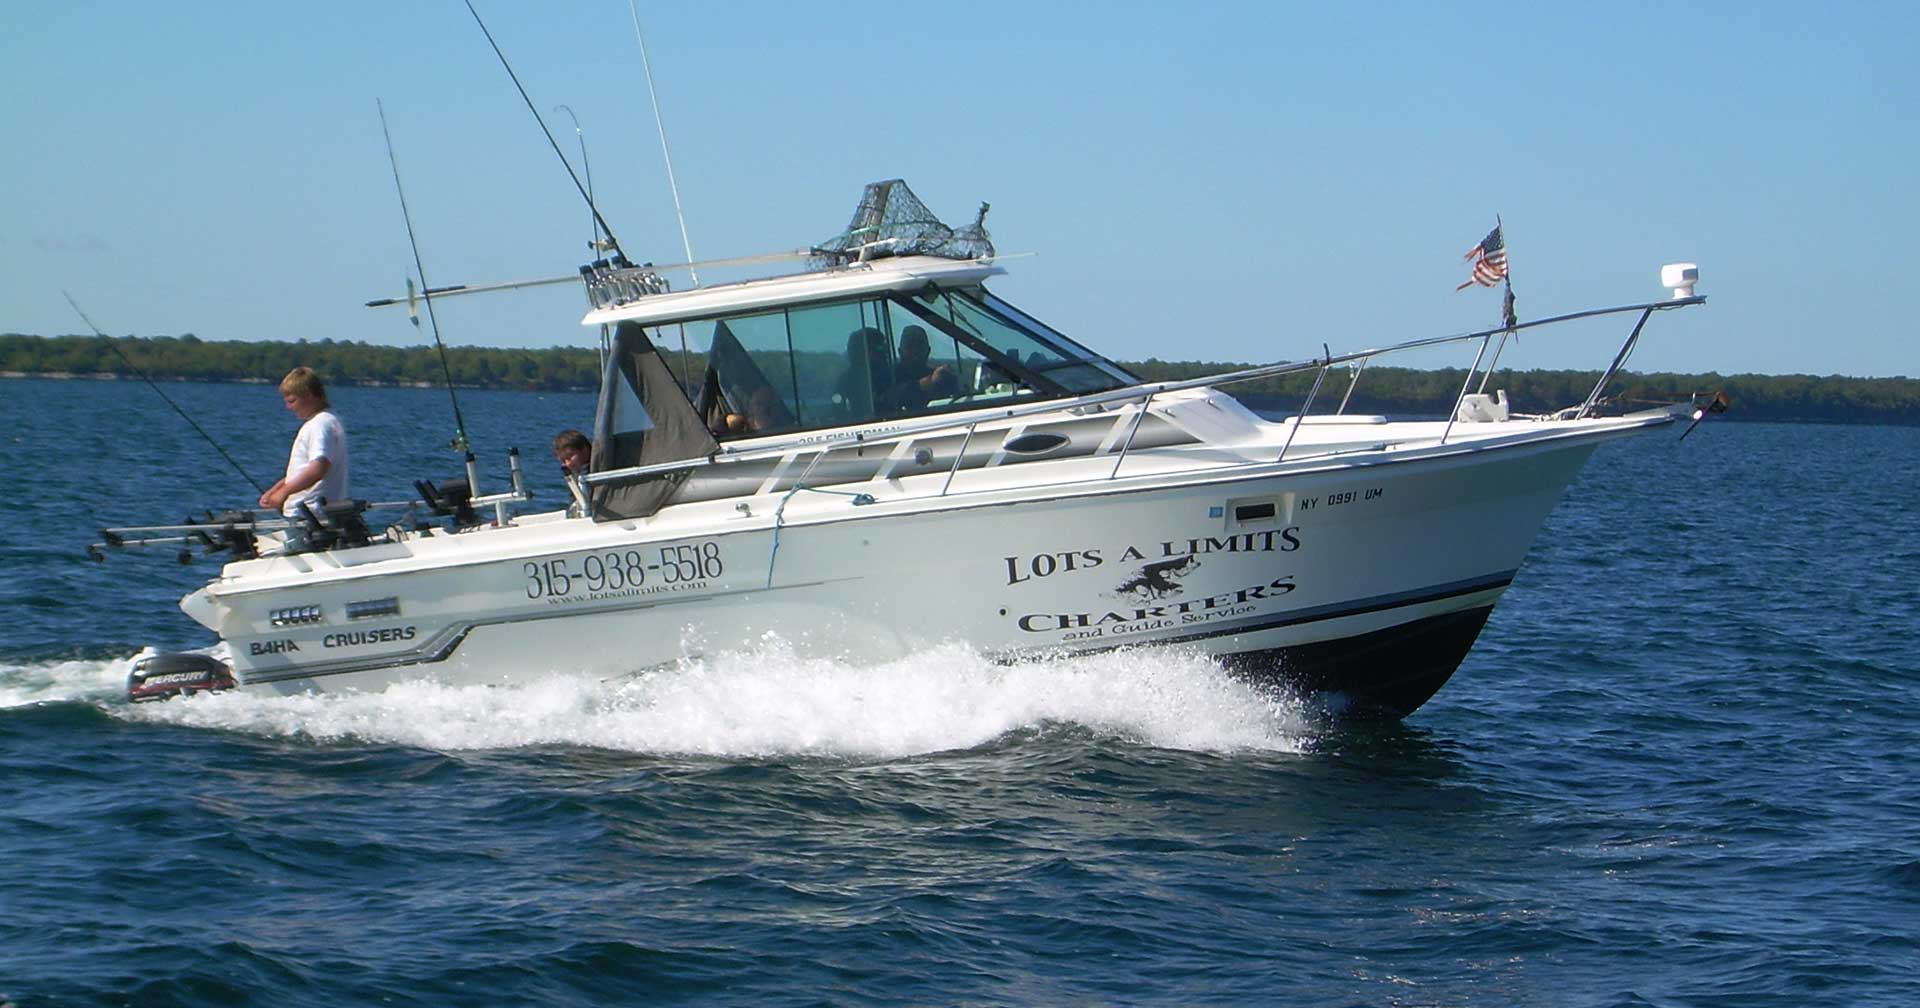 Lake ontario fishing guides charter services in for Lake ontario salmon fishing report